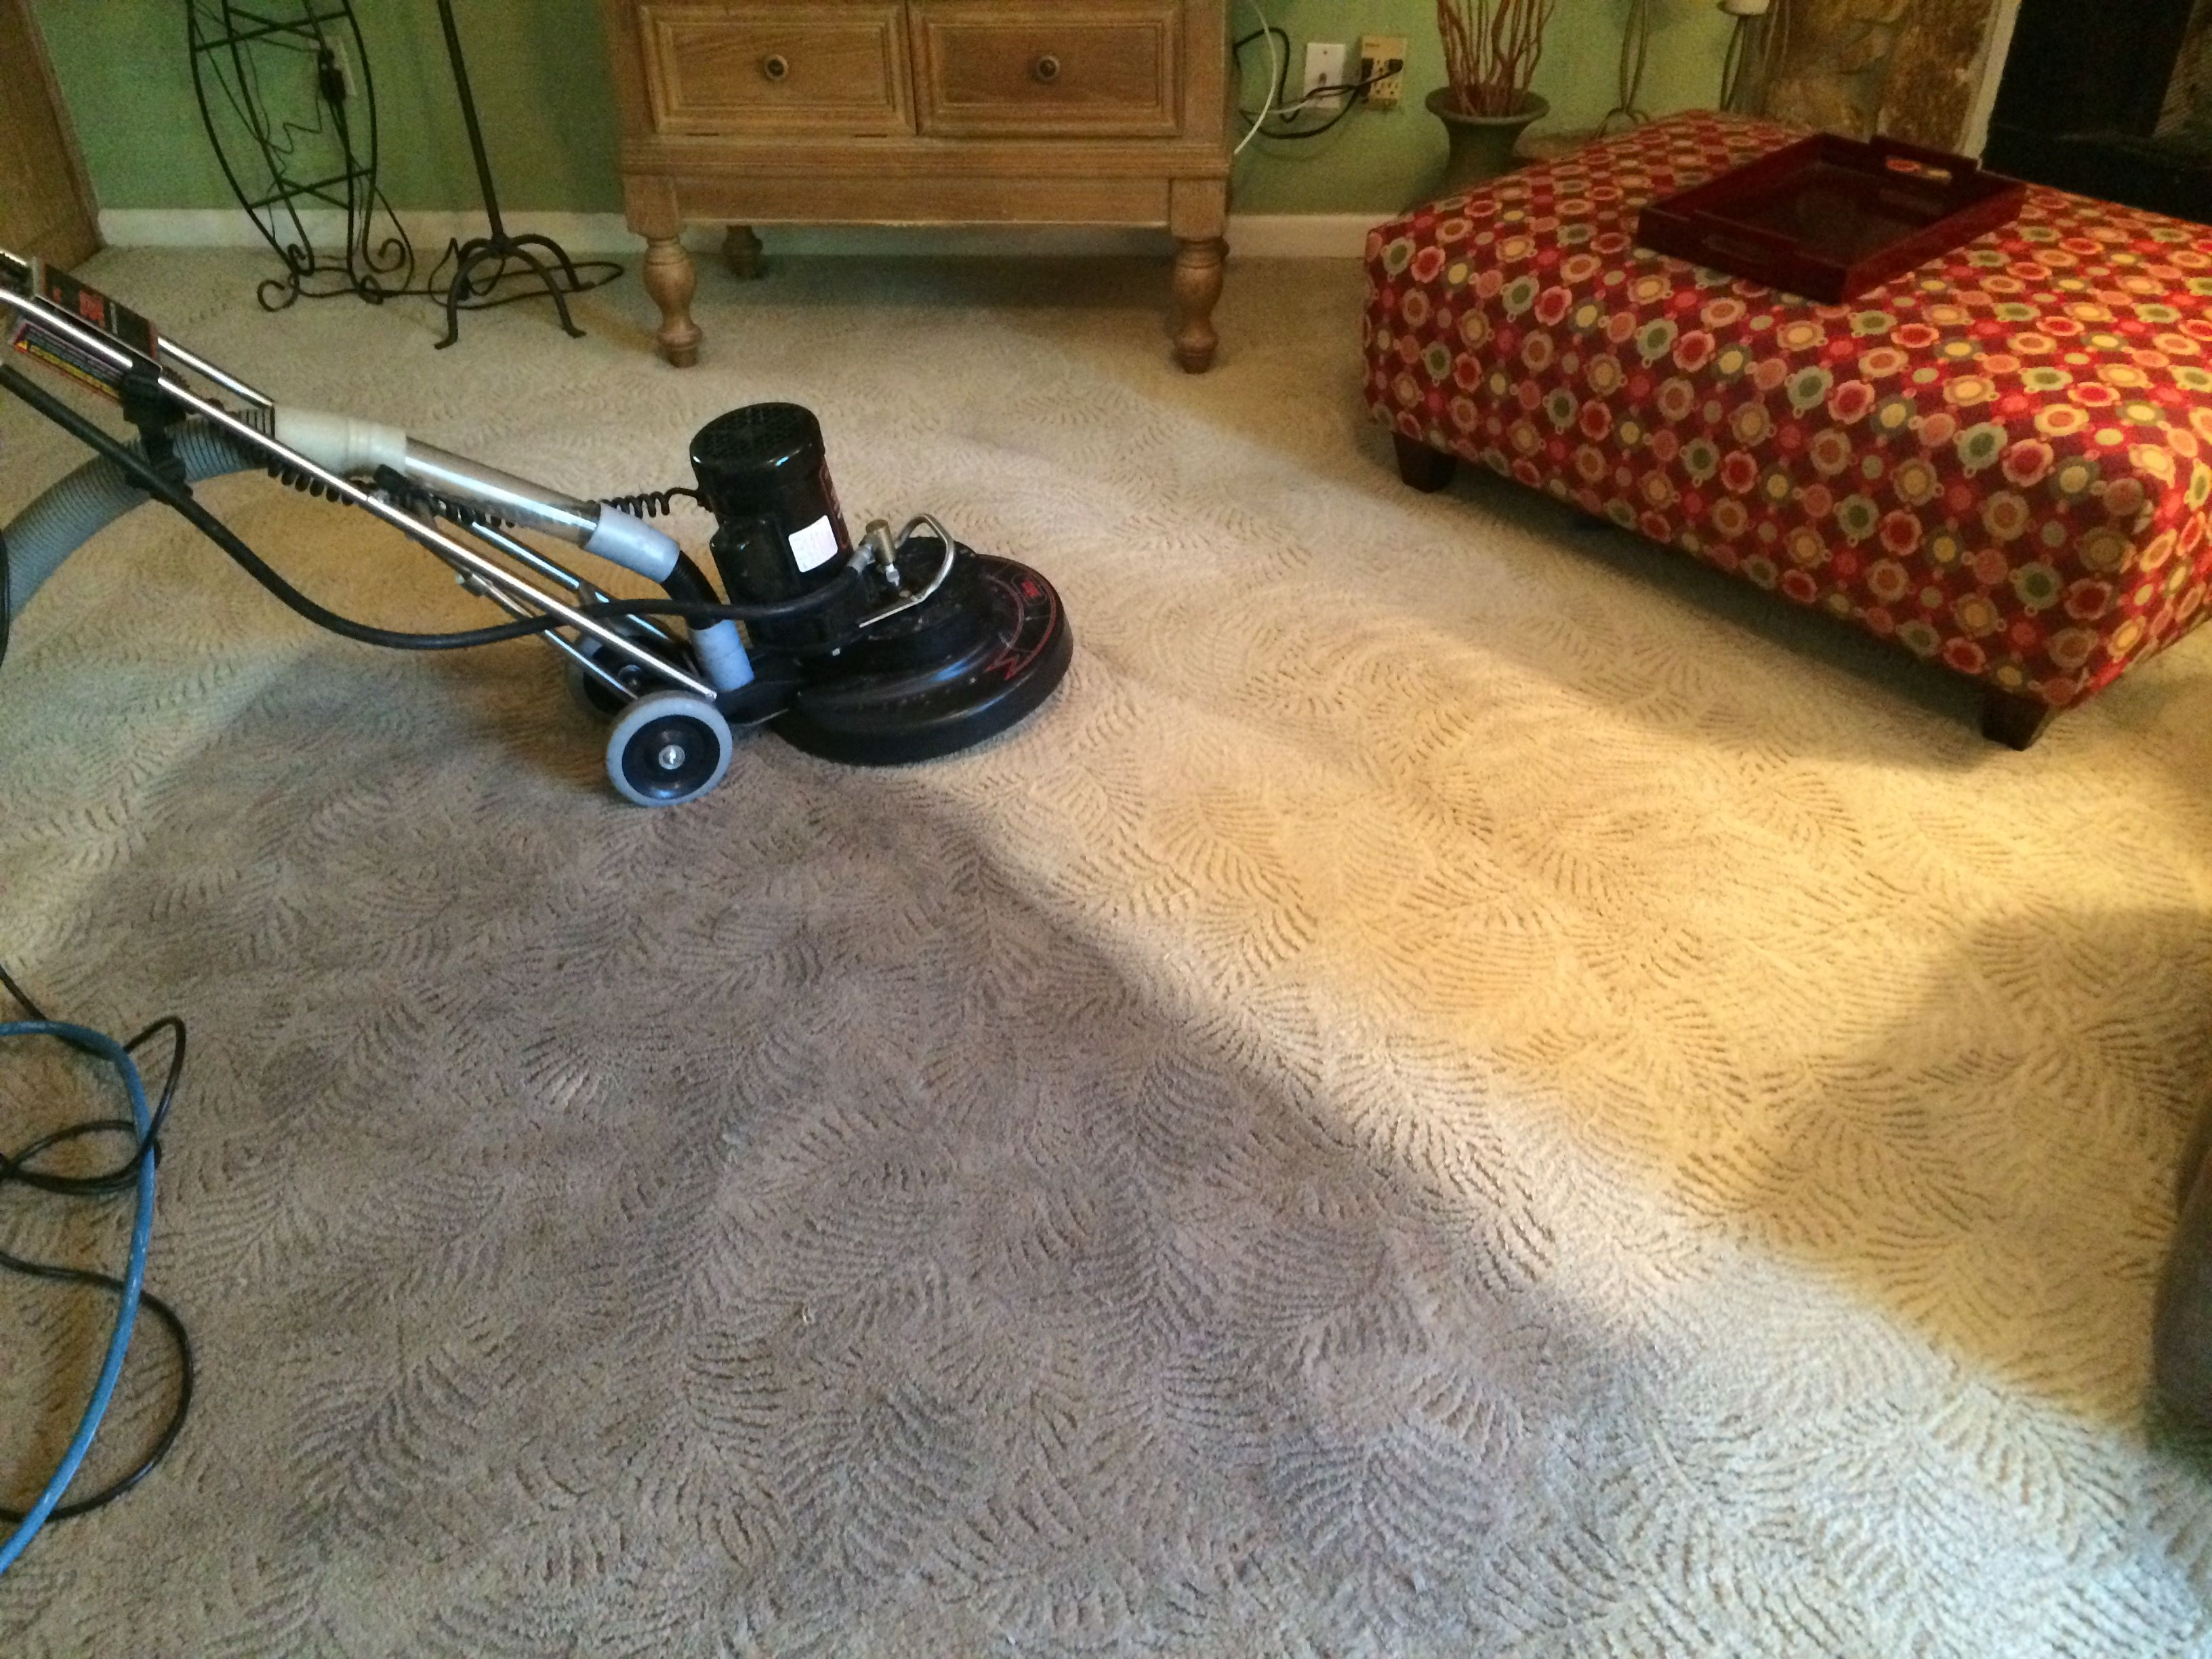 Rotary Extraction Cleaning On A Carpet That Had Been Diy Cleaned With A Rental Machi Carpet Cleaning Hacks Professional Carpet Cleaning Natural Carpet Cleaning